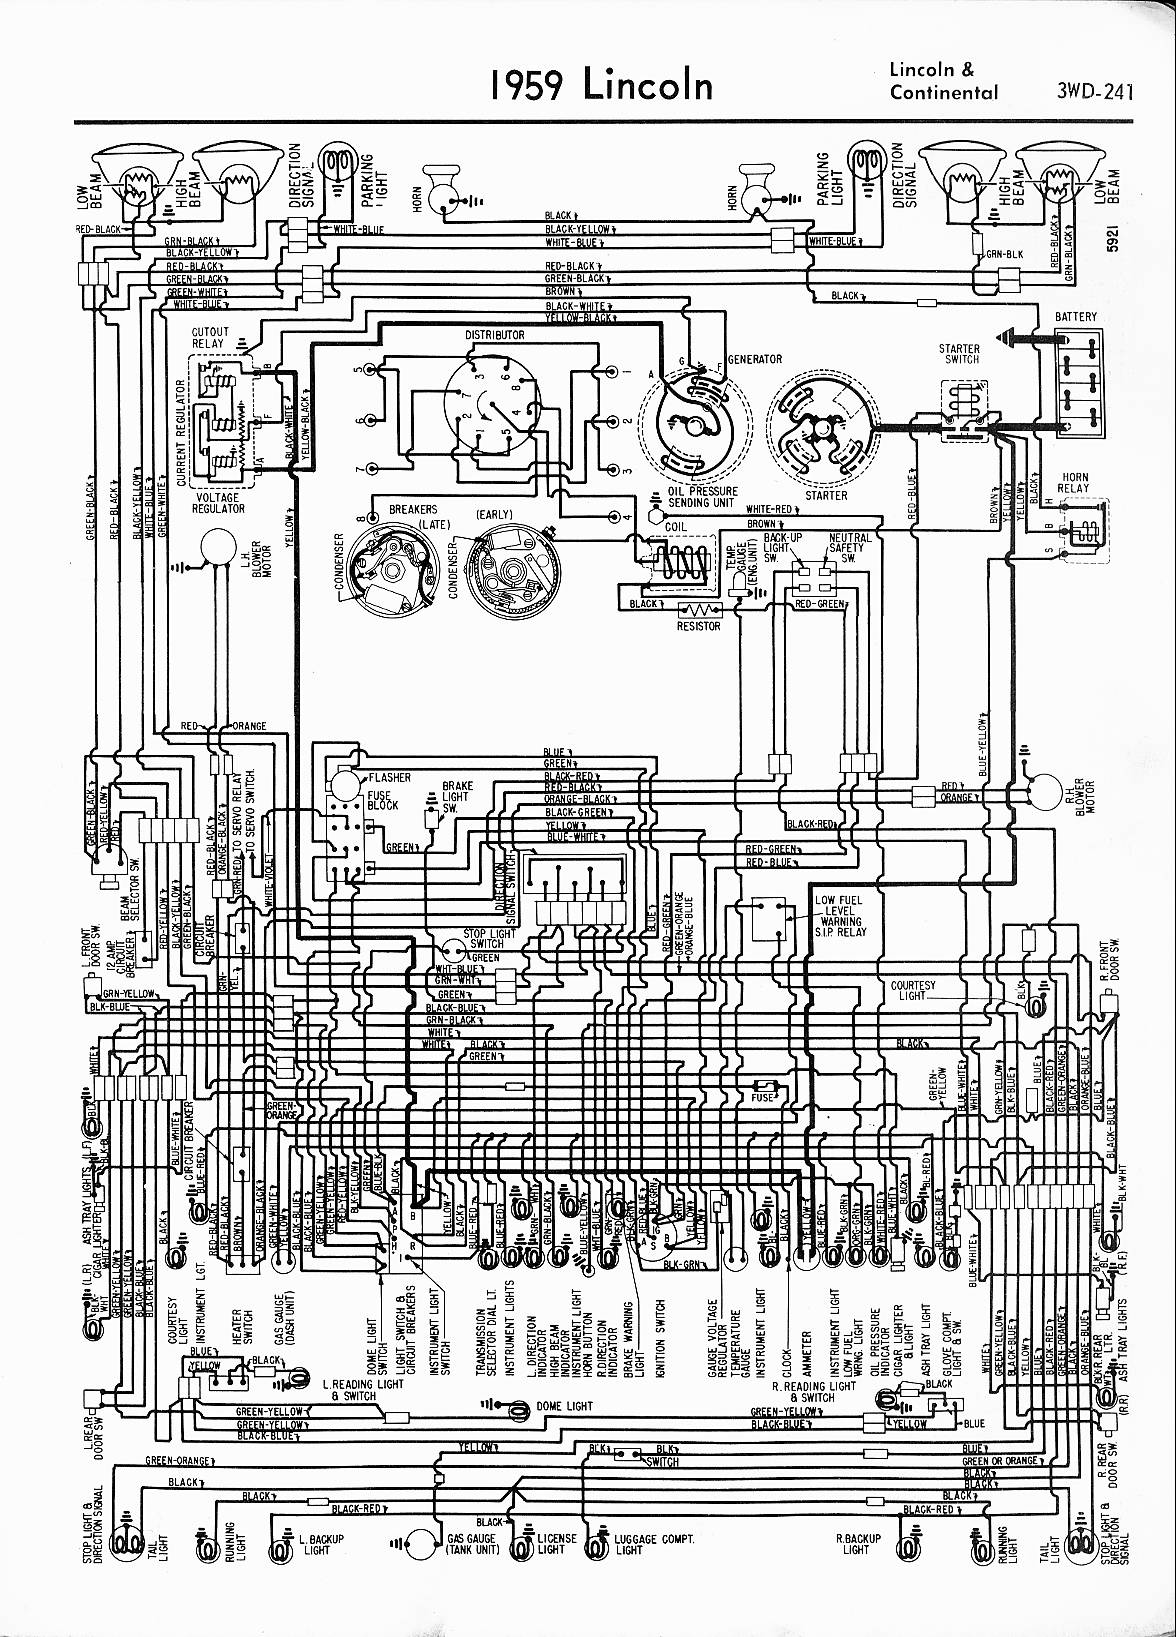 MWireLin_Lin57_z3wd 241z_004 1966 lincoln continental wiring diagram 1970 lincoln continental 1977 International Truck Wiring Diagram at readyjetset.co